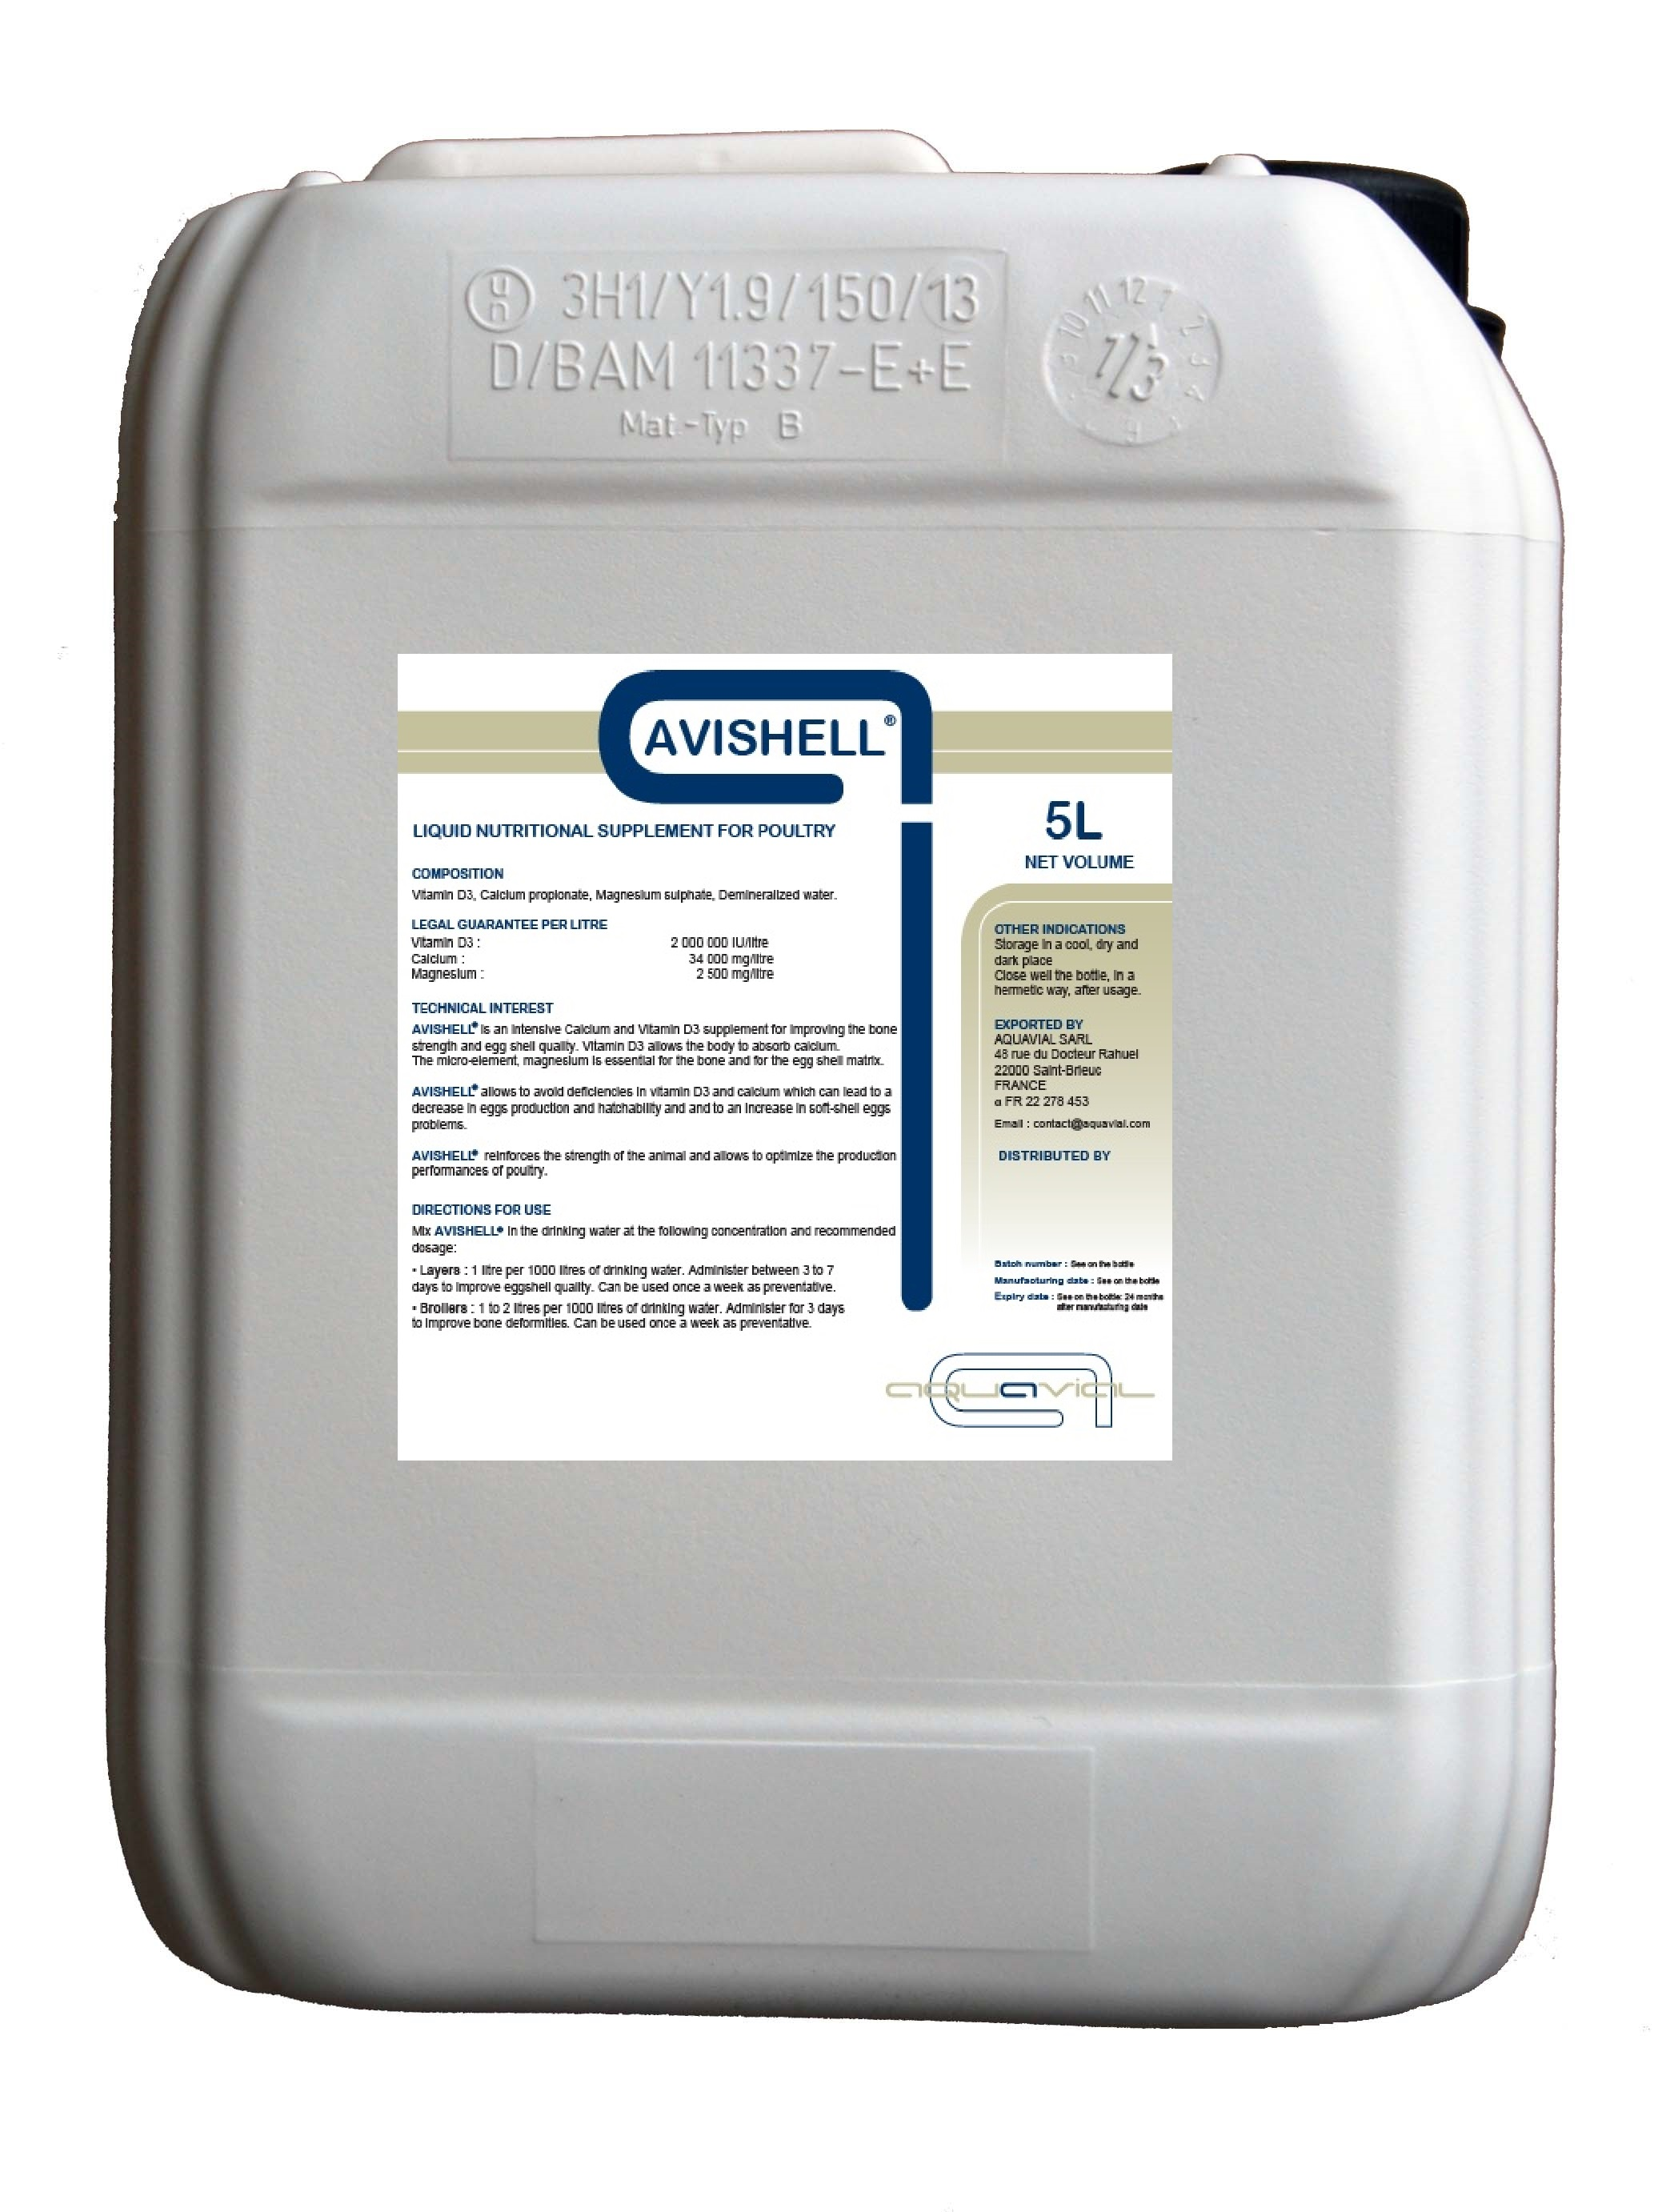 Avishell : Aquavial nutritional supplement for poultry